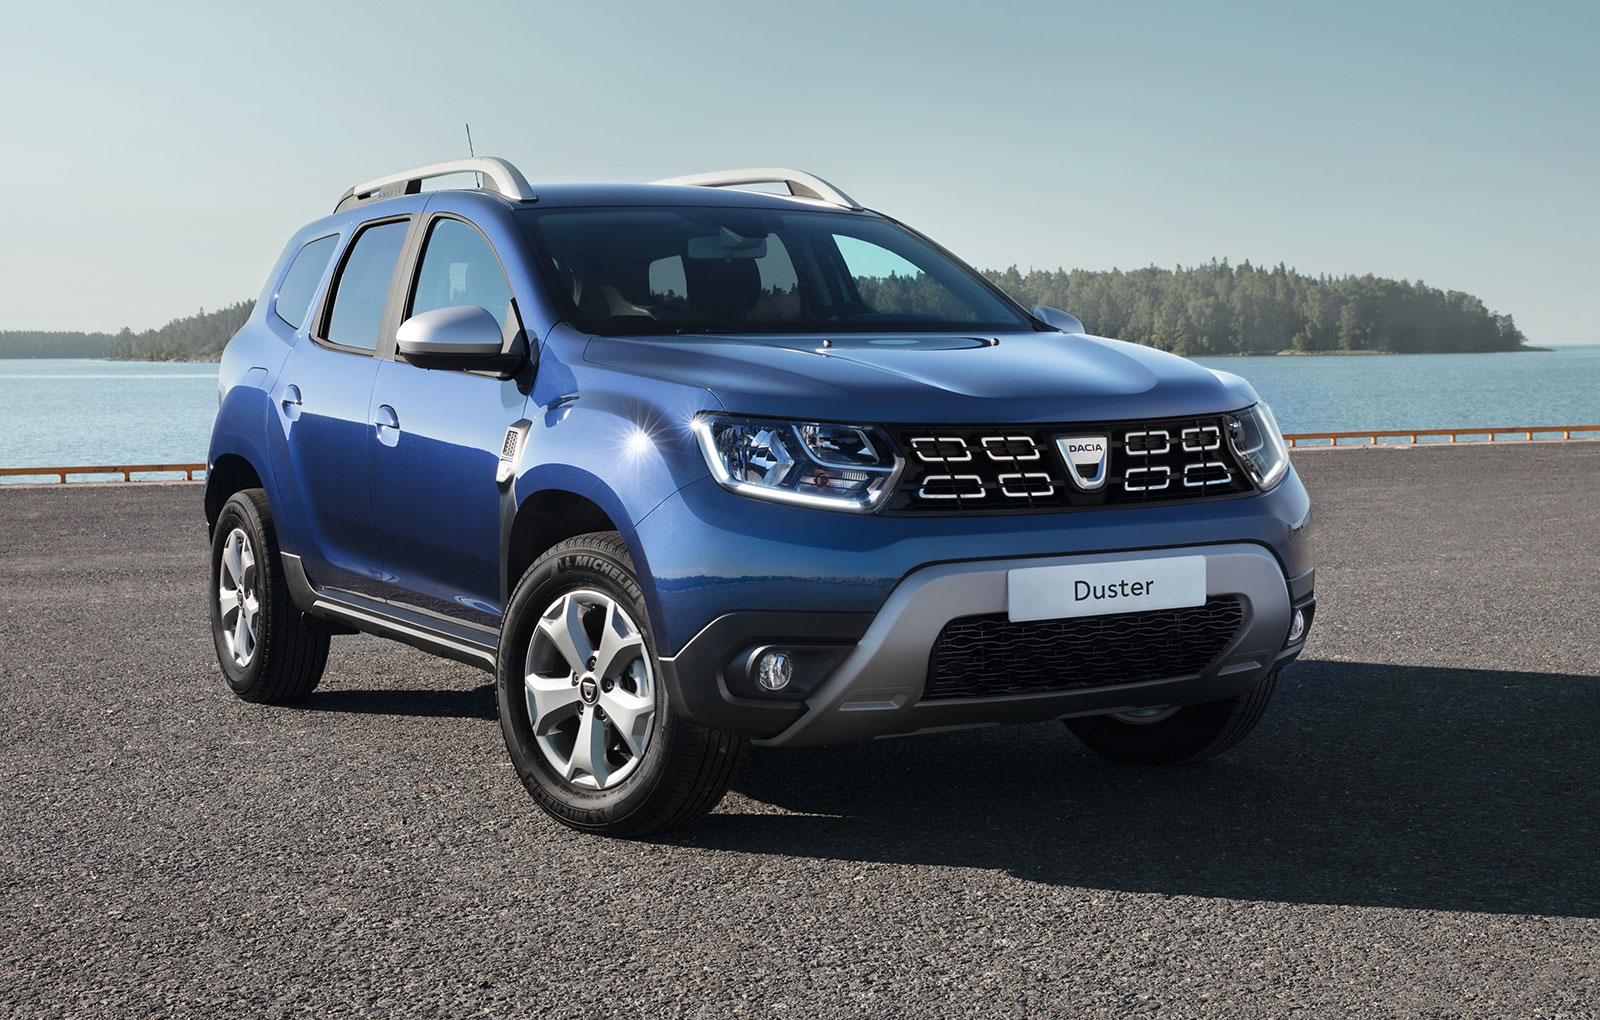 Dacia Duster Accessoires Interieur Dacia Launched The New Duster 2018 Dacia Duster